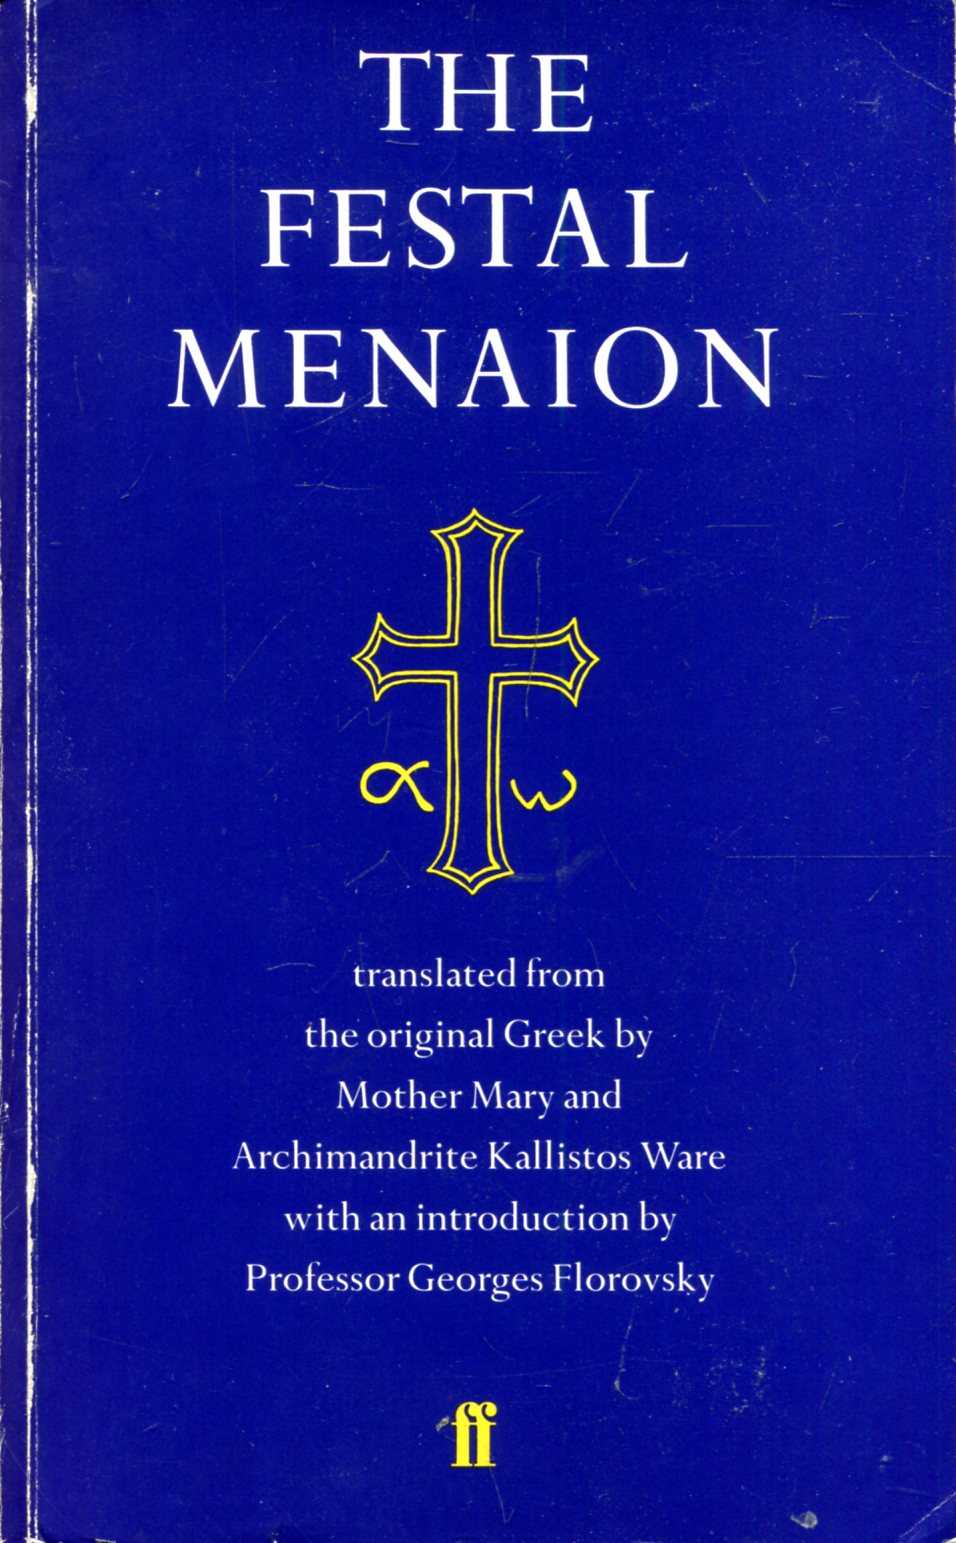 Image for The Festal Menaion, translated into English from the original Greek